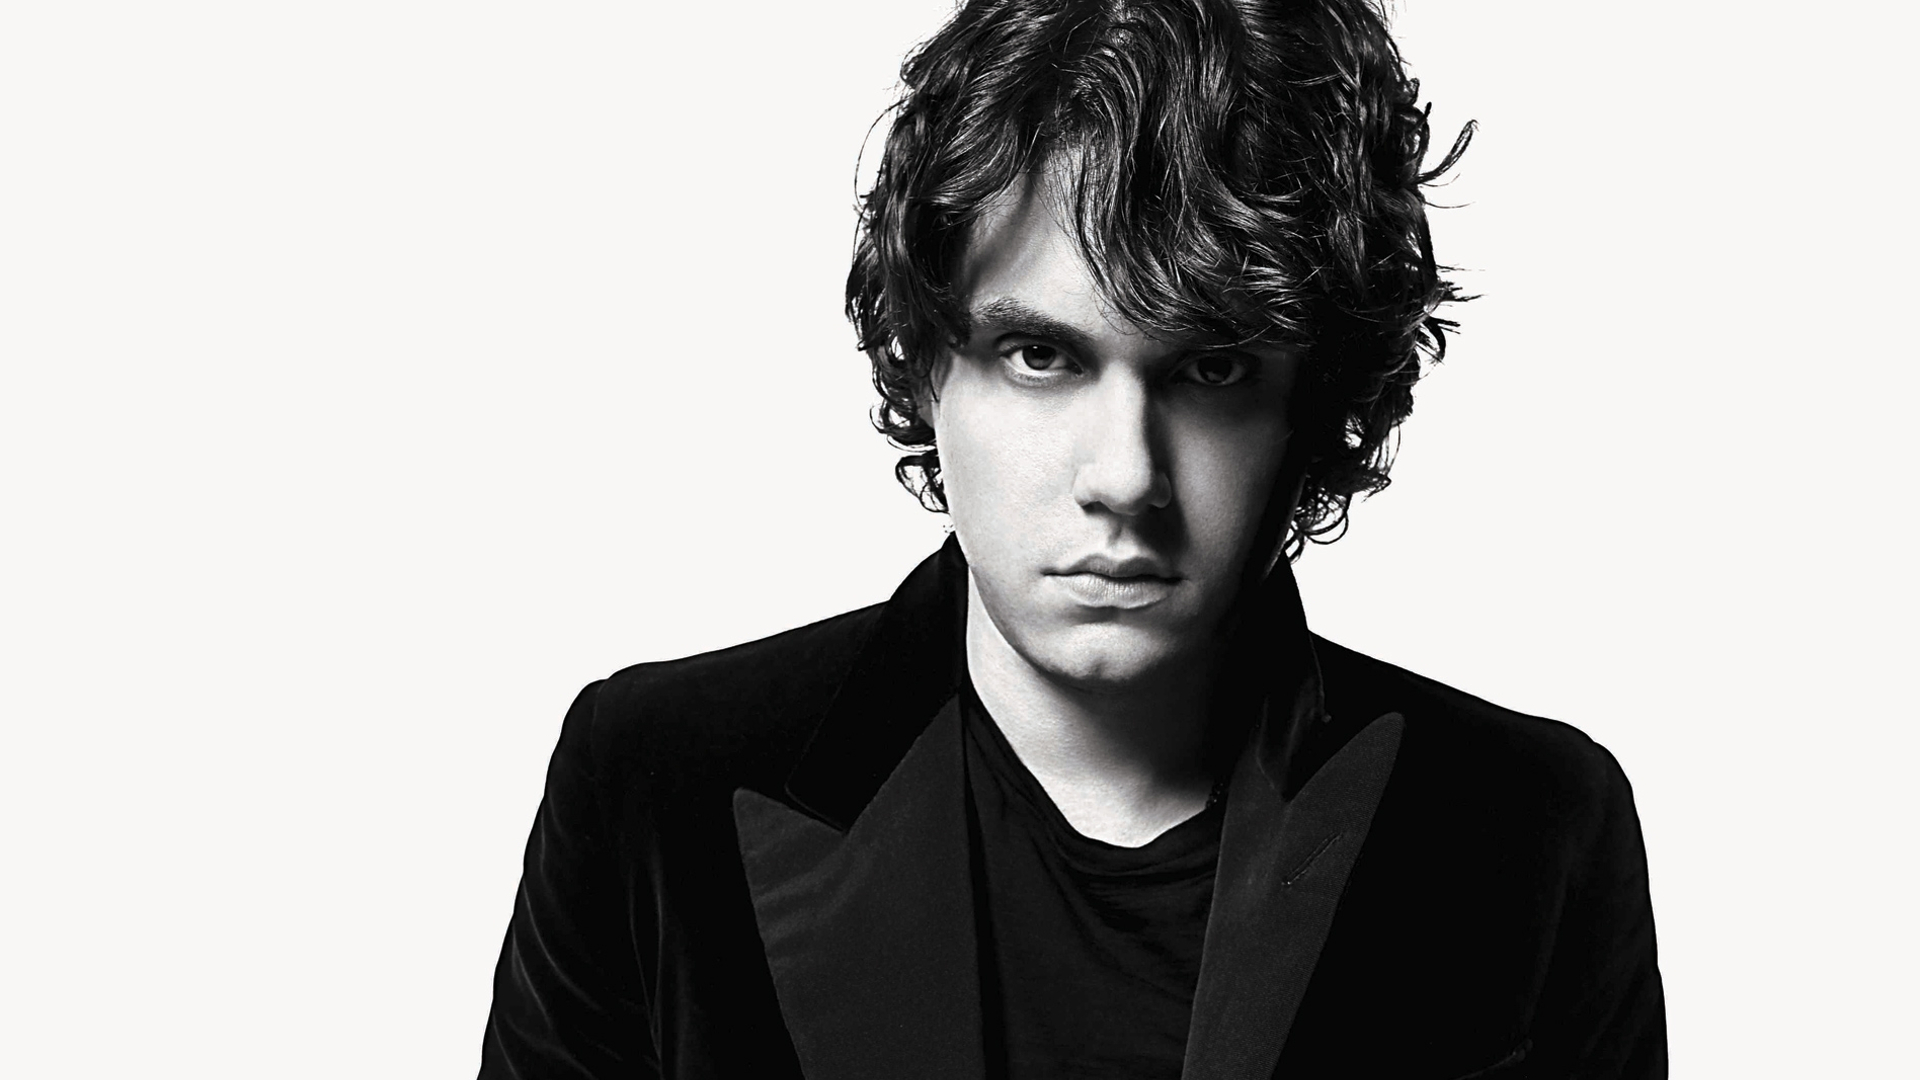 John Mayer Wallpaper: John Mayer Full HD Wallpaper And Background Image